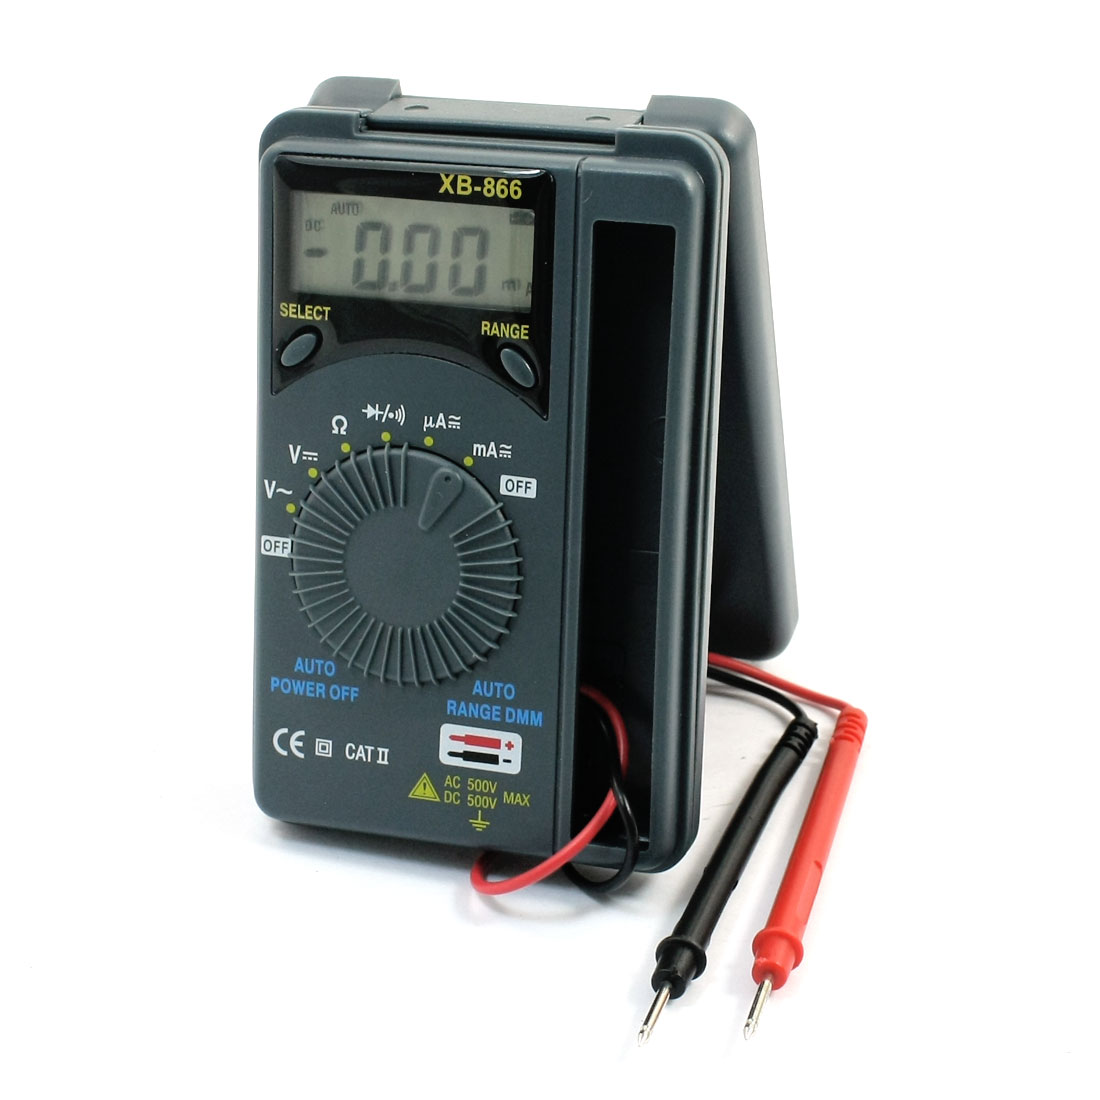 XB866 Power By 2xAAA Battery Portable Rectangle Gray Plastic AC DC Voltmeter Ammeter Ohmmeter Analog Multimeter w Test Probe Lead